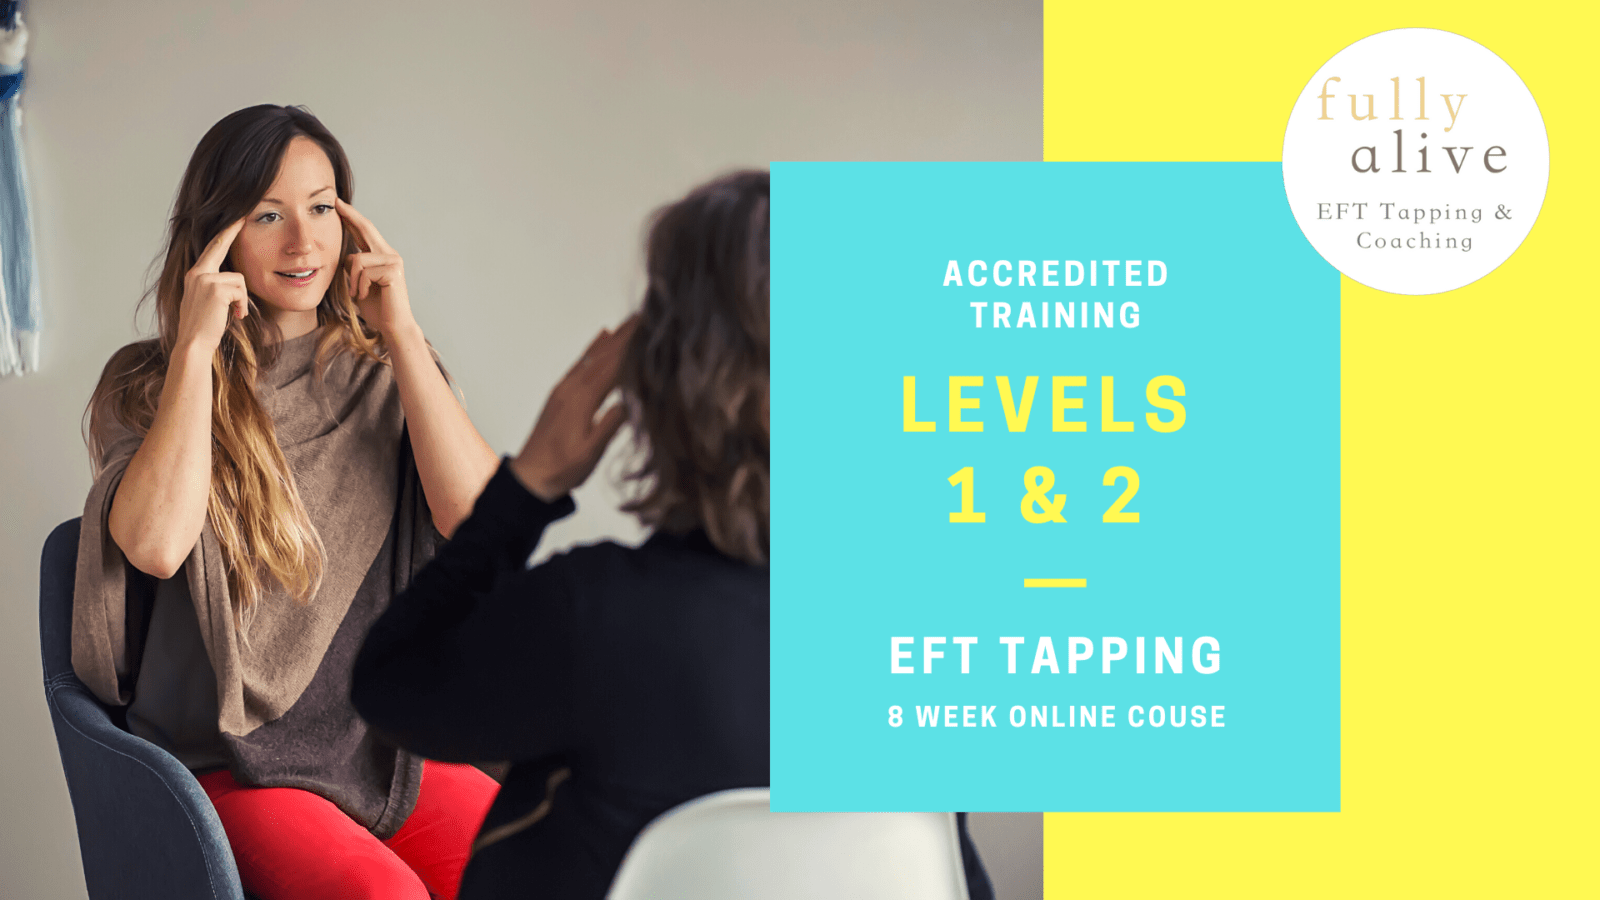 Online Accredited EFT Tapping Training - Levels 1 & 2 Combined Course